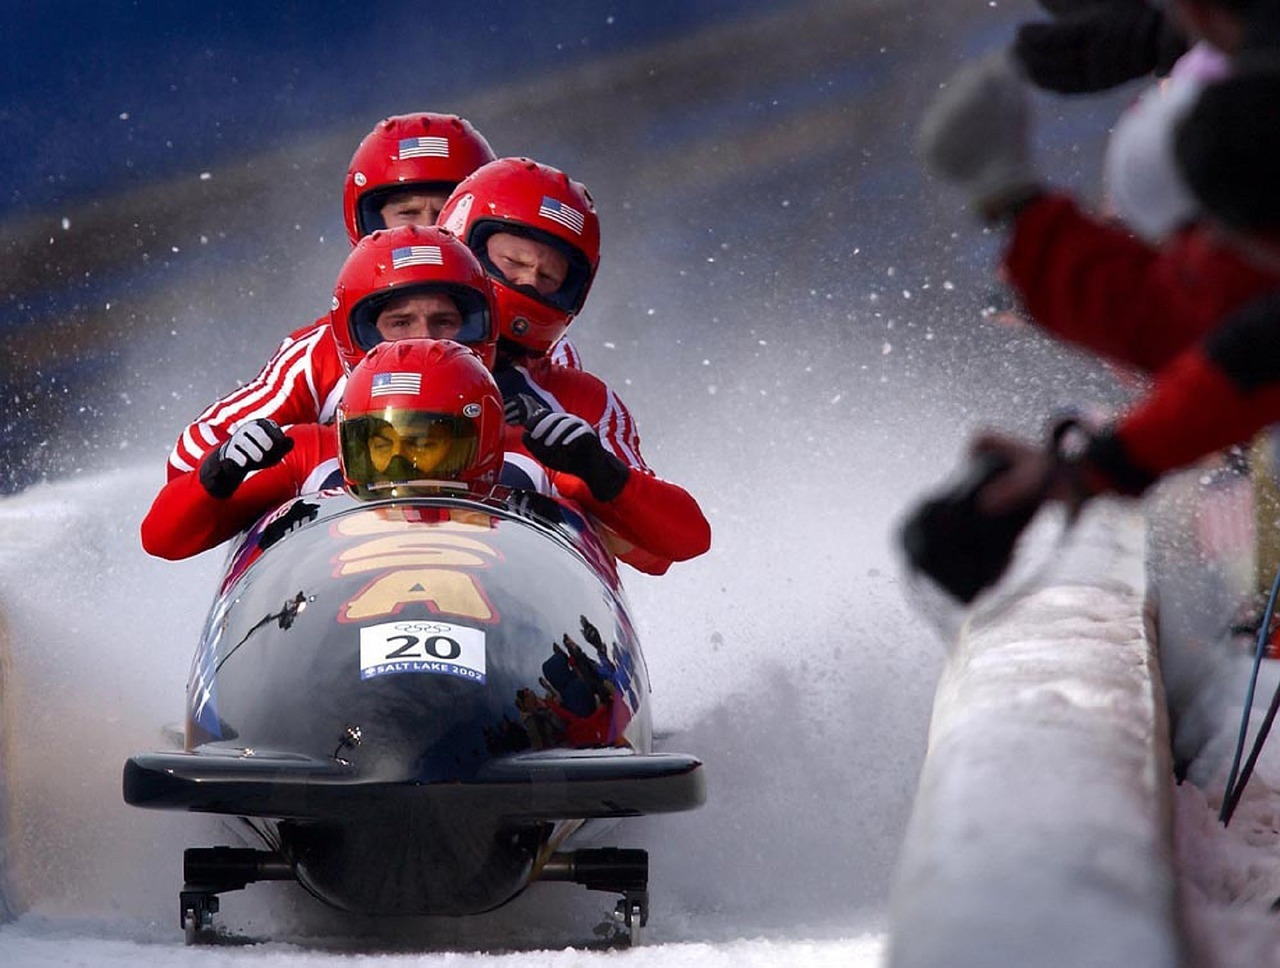 Winter Olympics Bobsled Image